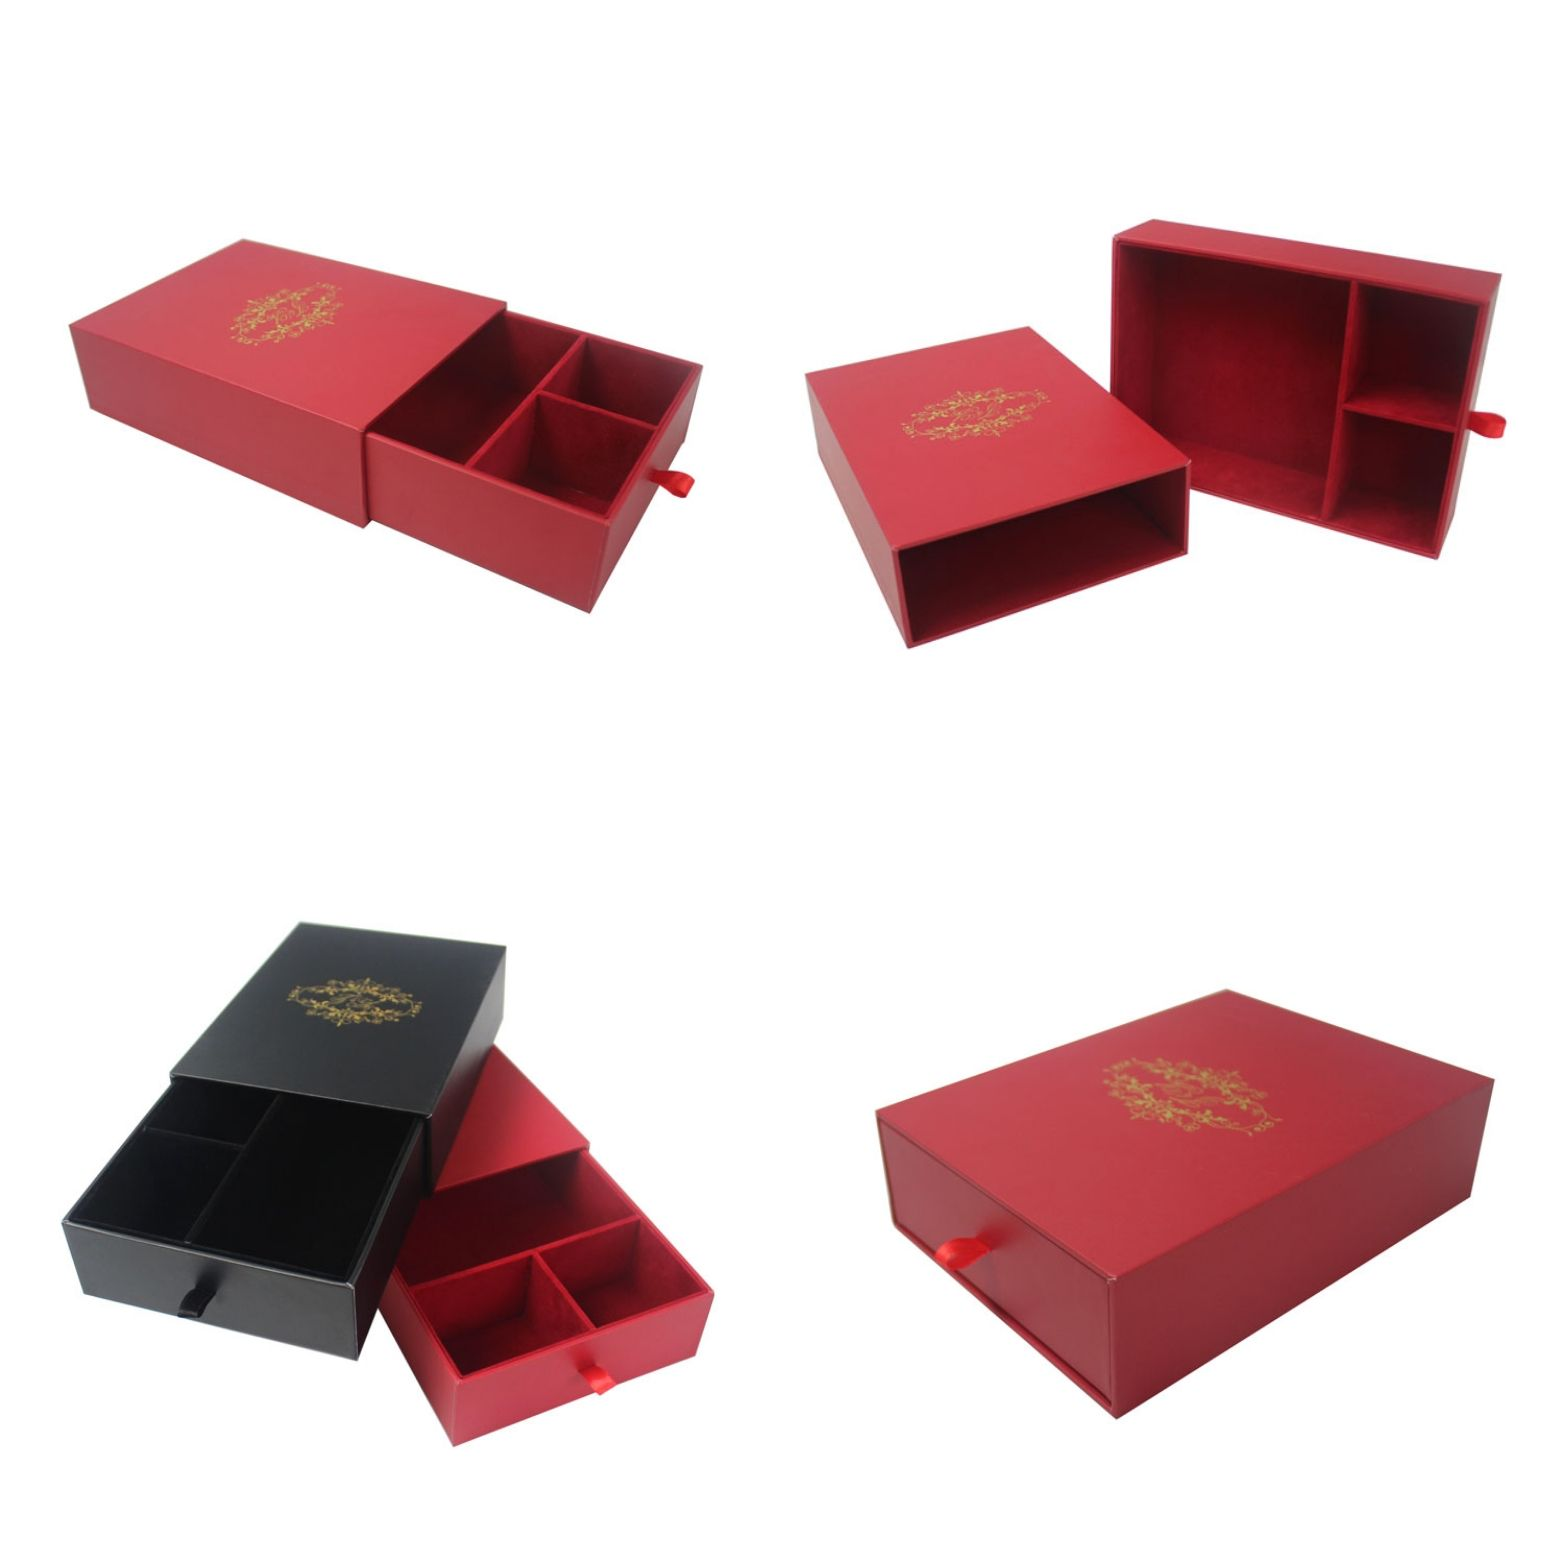 2aa1cedc273 Premium handmade cardboard drawer style gift box with velvet lining and  multi compartments, suitable for kinds of valued gifts article packaging!